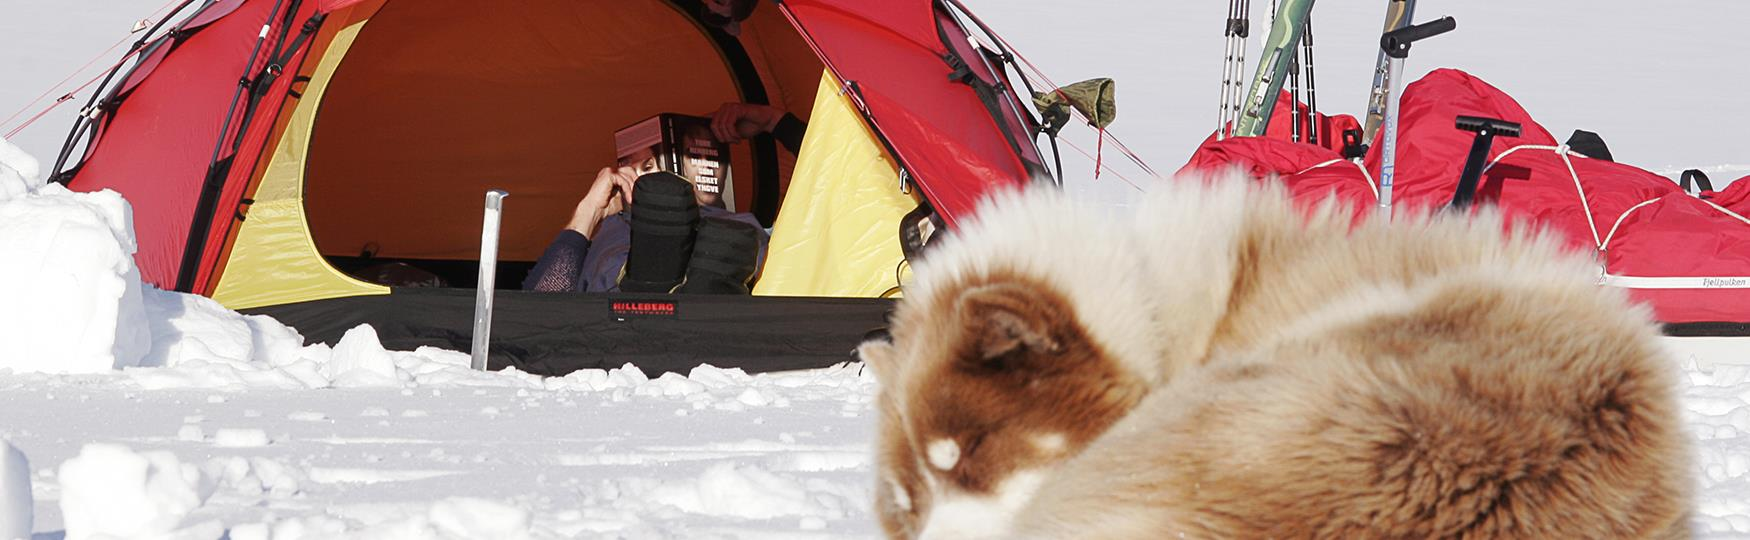 Expeditions in the High Arctic